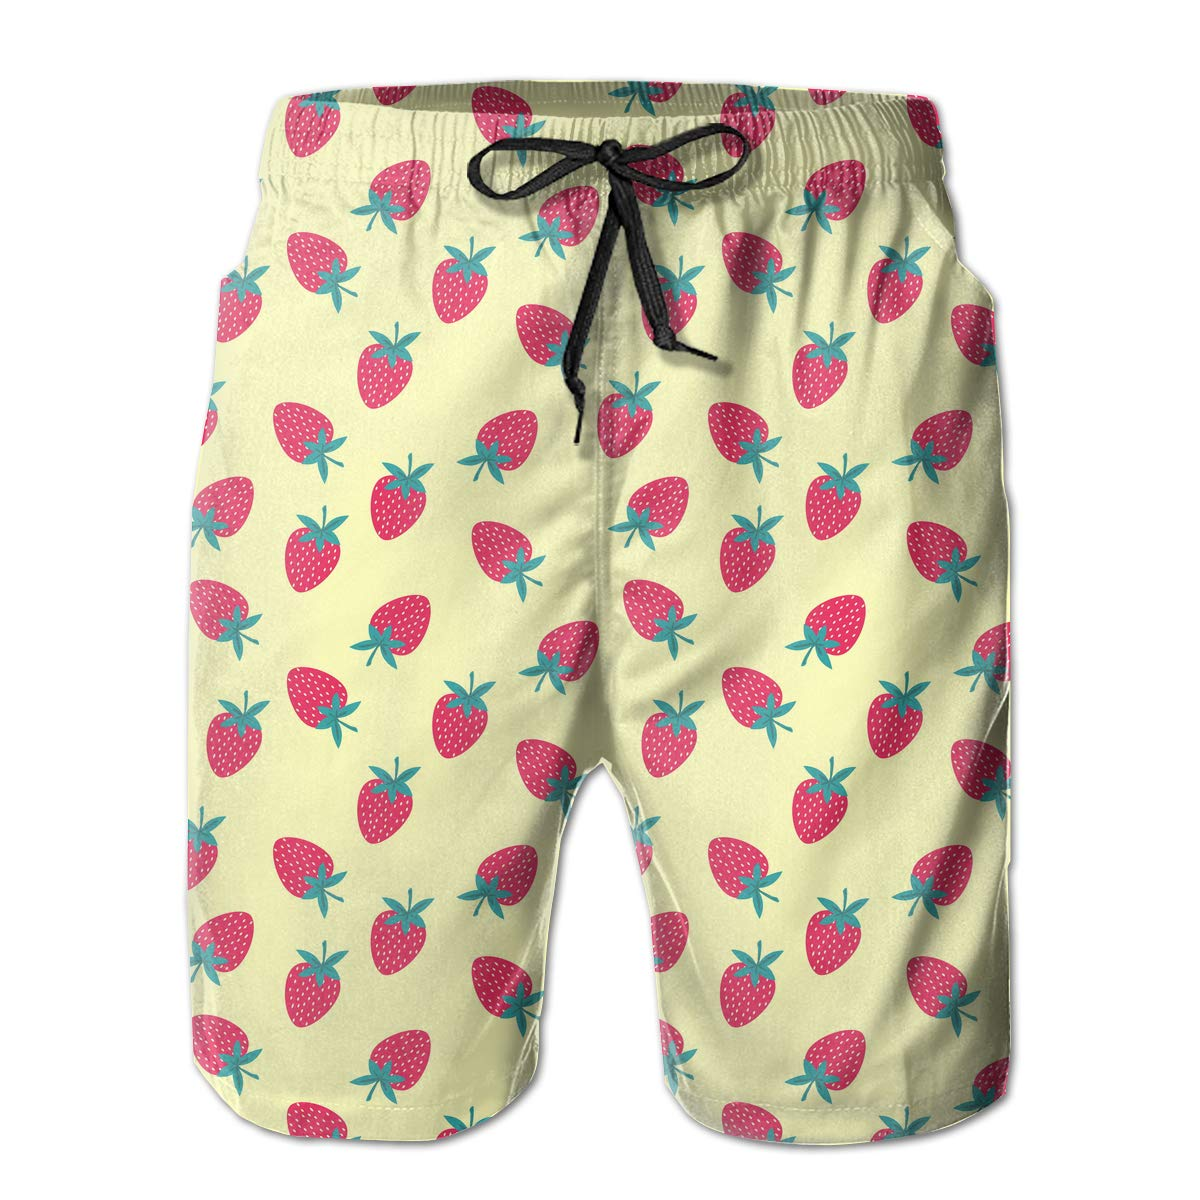 Xk7@KU Mens Casual Swim Trunks Polyester Strawberries Pattern Swimsuit with Pockets